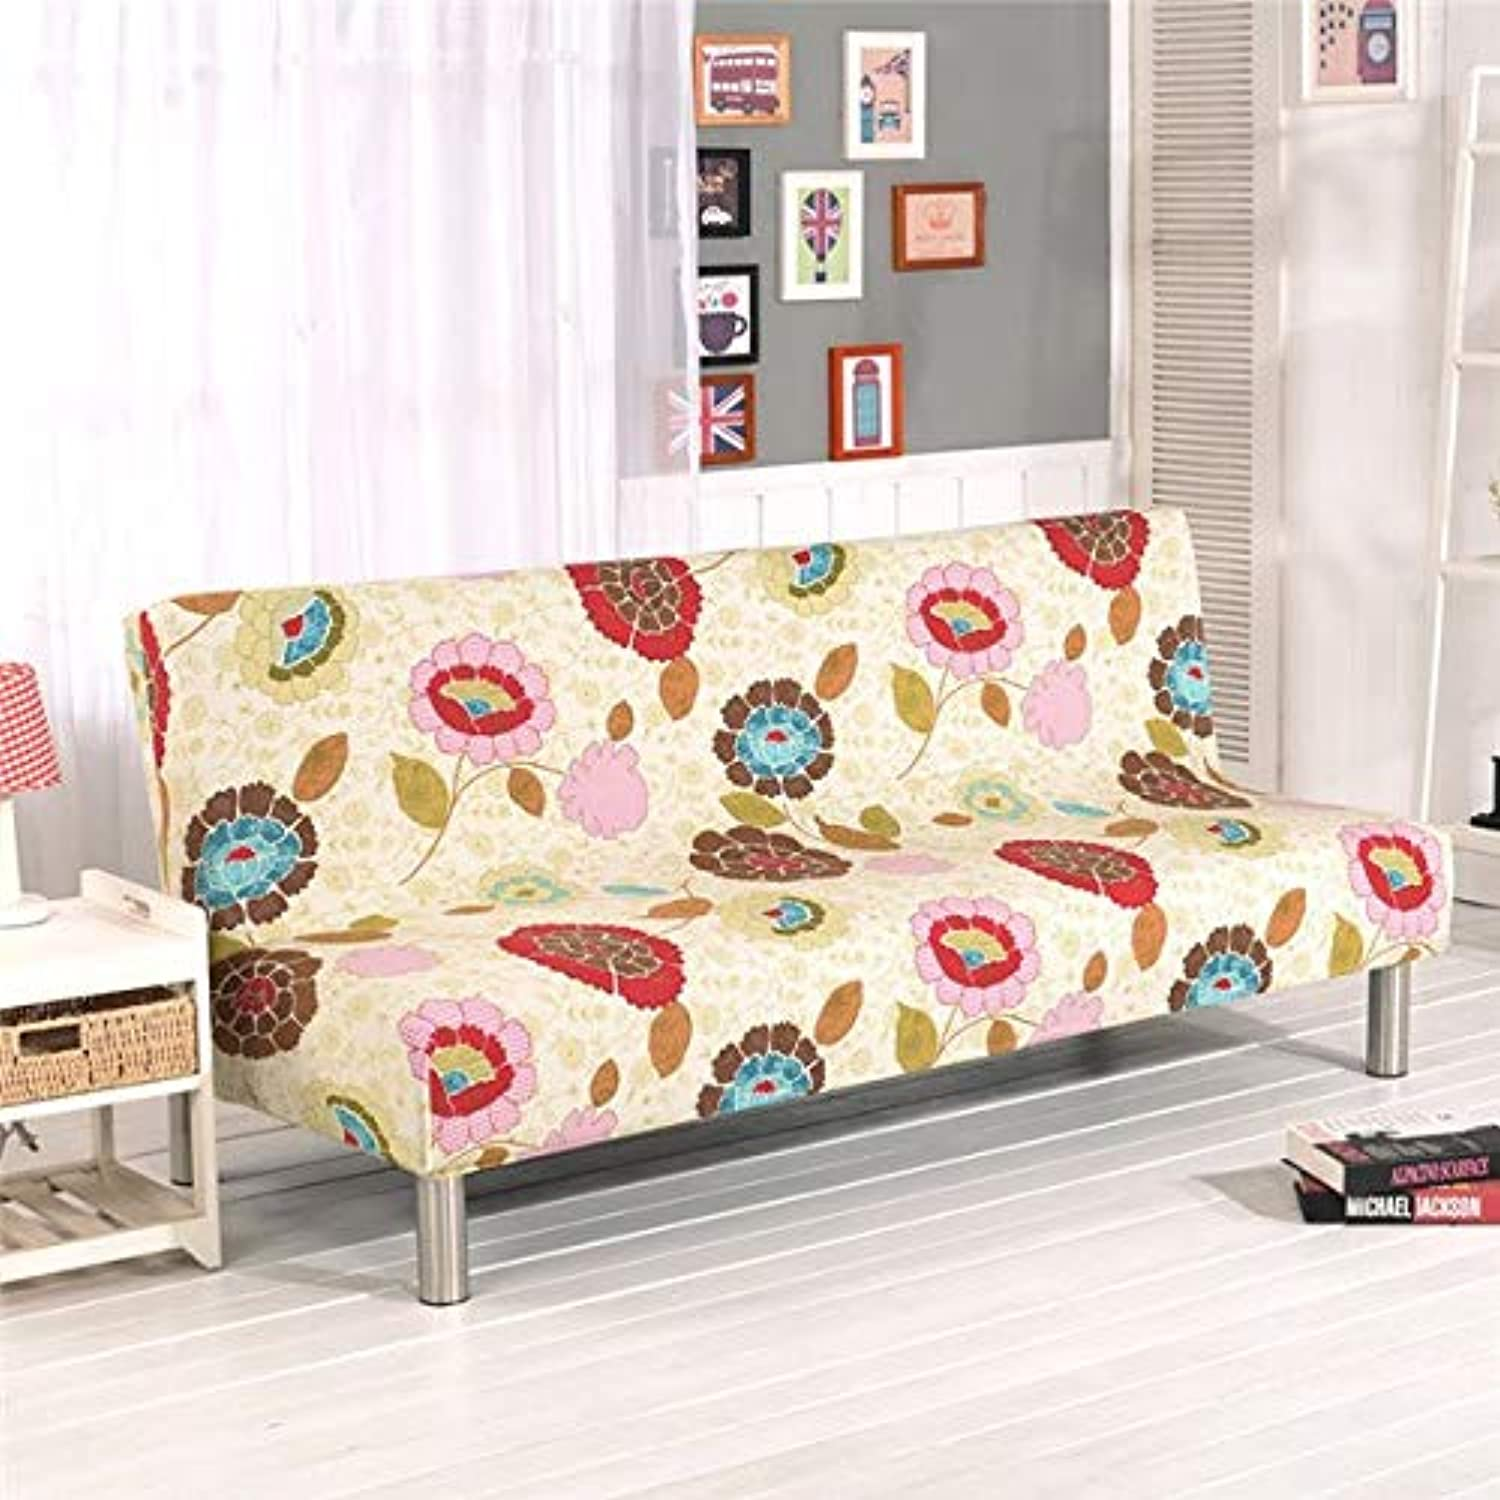 New Drop Shipping Solid color Soft All-Inclusive Fabric Cover Sofa Slipcover Elastic Sofa Cover Couch Cover for 1 2 3 4 Seats   SC01206, Four Seater